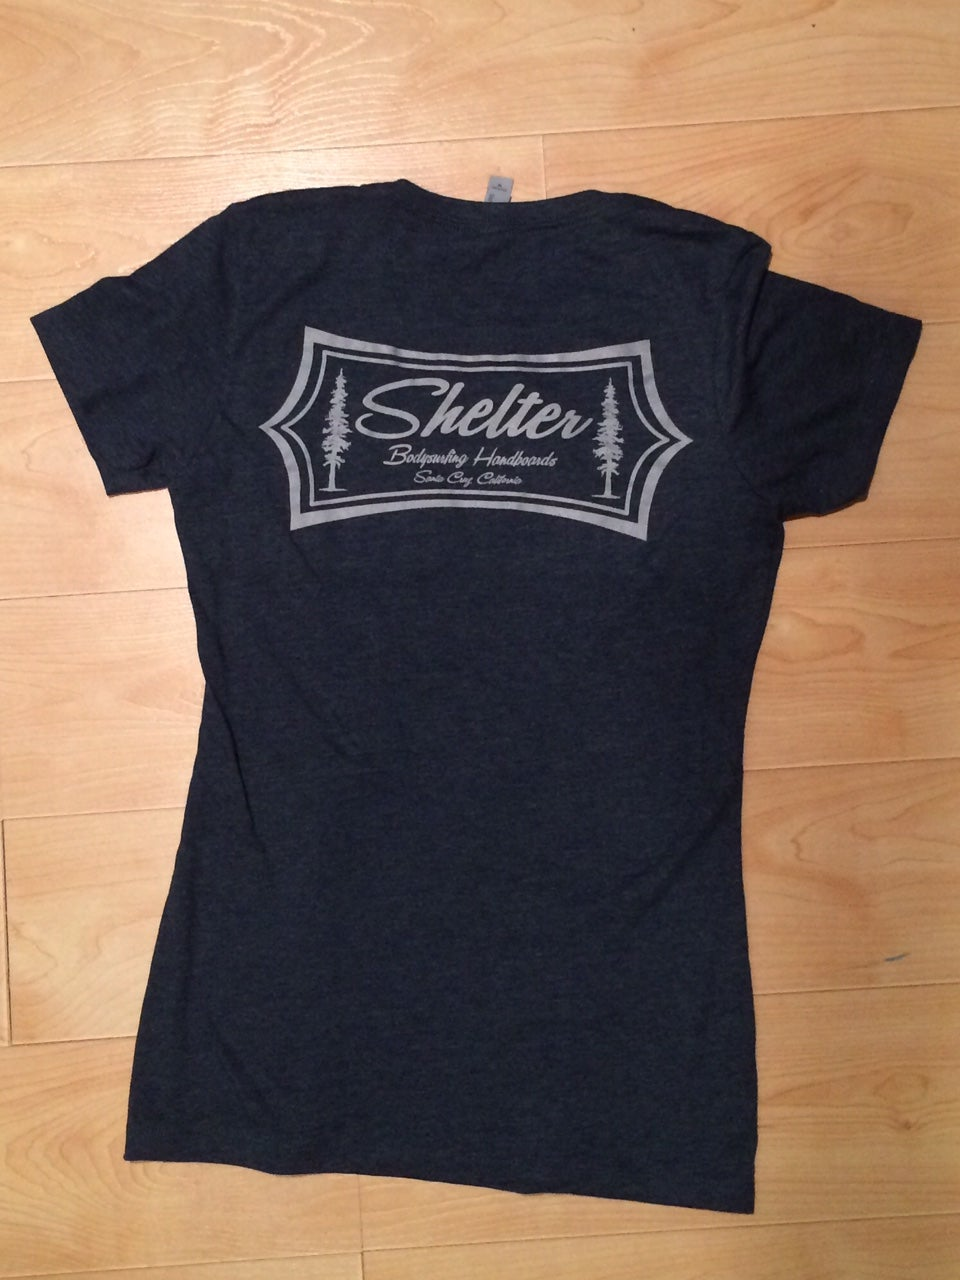 Image of The Shelter Shirt